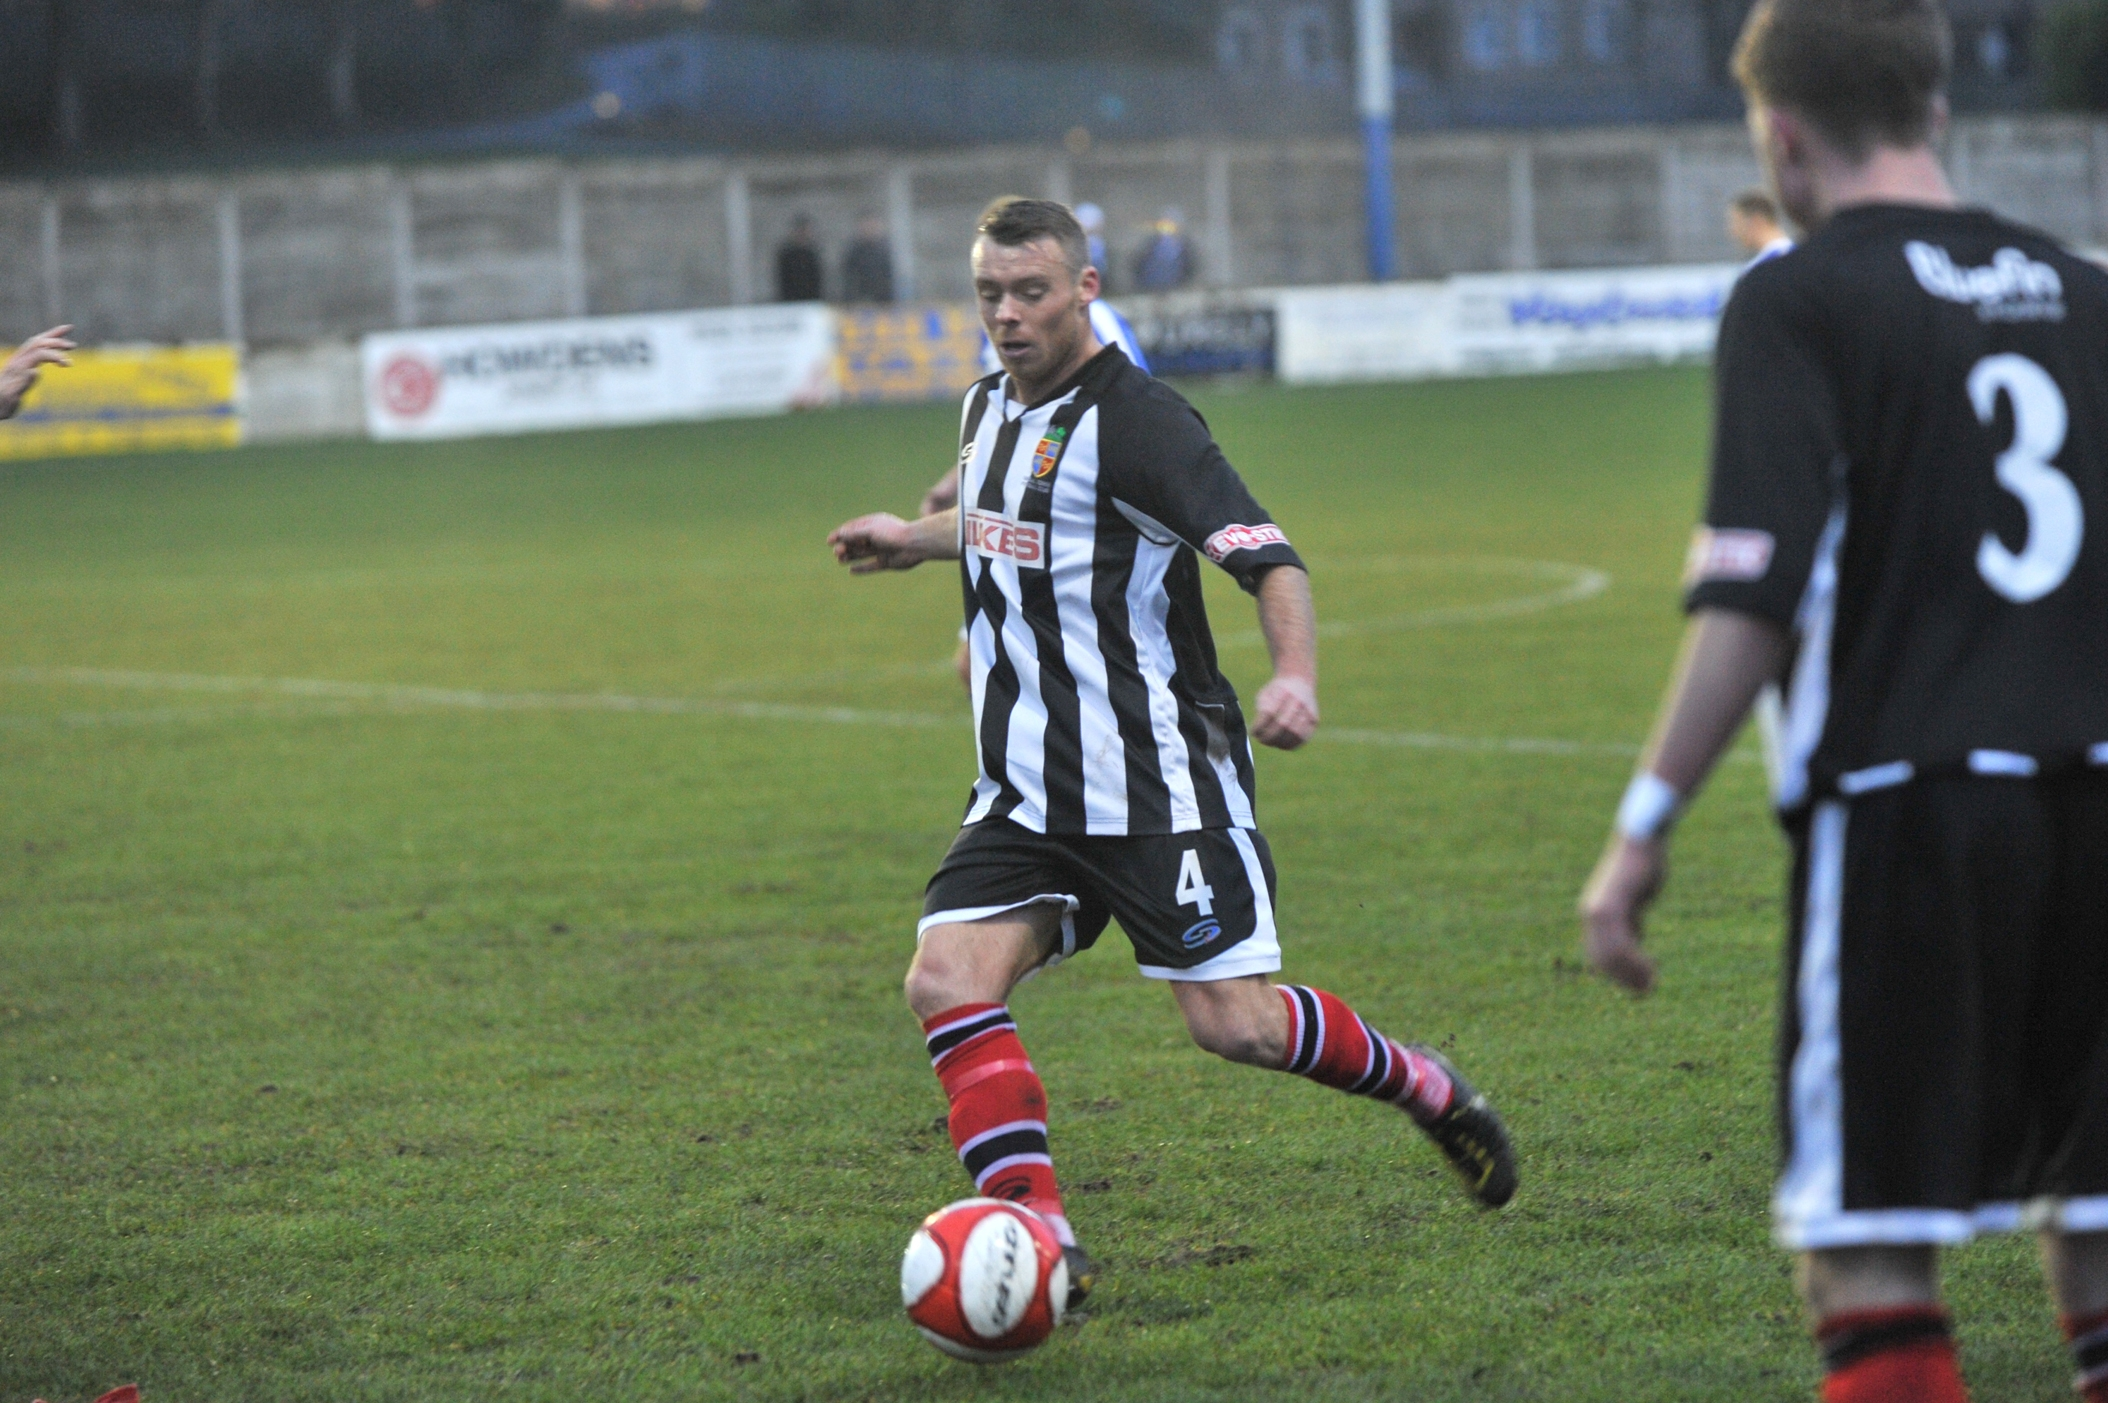 Former Preston North End midfielder Warren Beattie talks of his eventful Kendal Town season